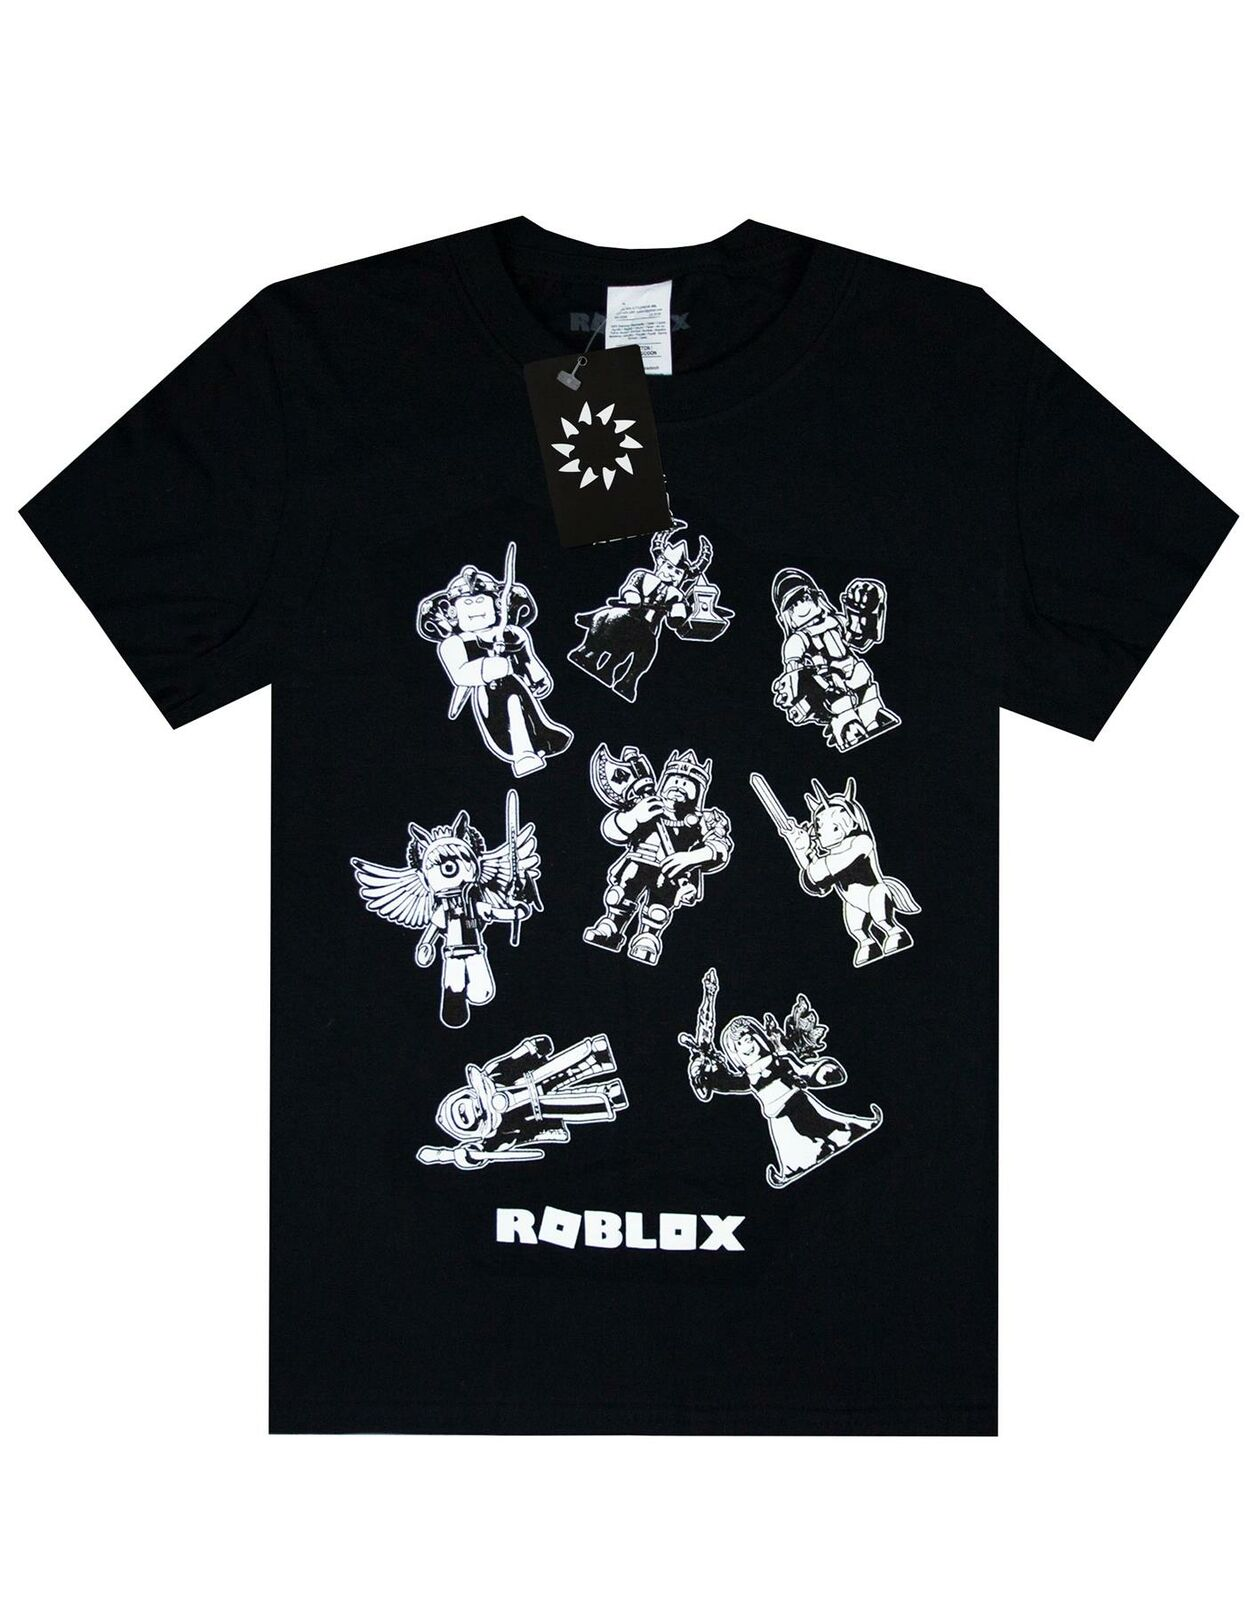 Roblox-Characters-In-Space-Kid-039-s-Black-T-Shirt-Short-Sleeve-Gamer-039-s-Tee thumbnail 11